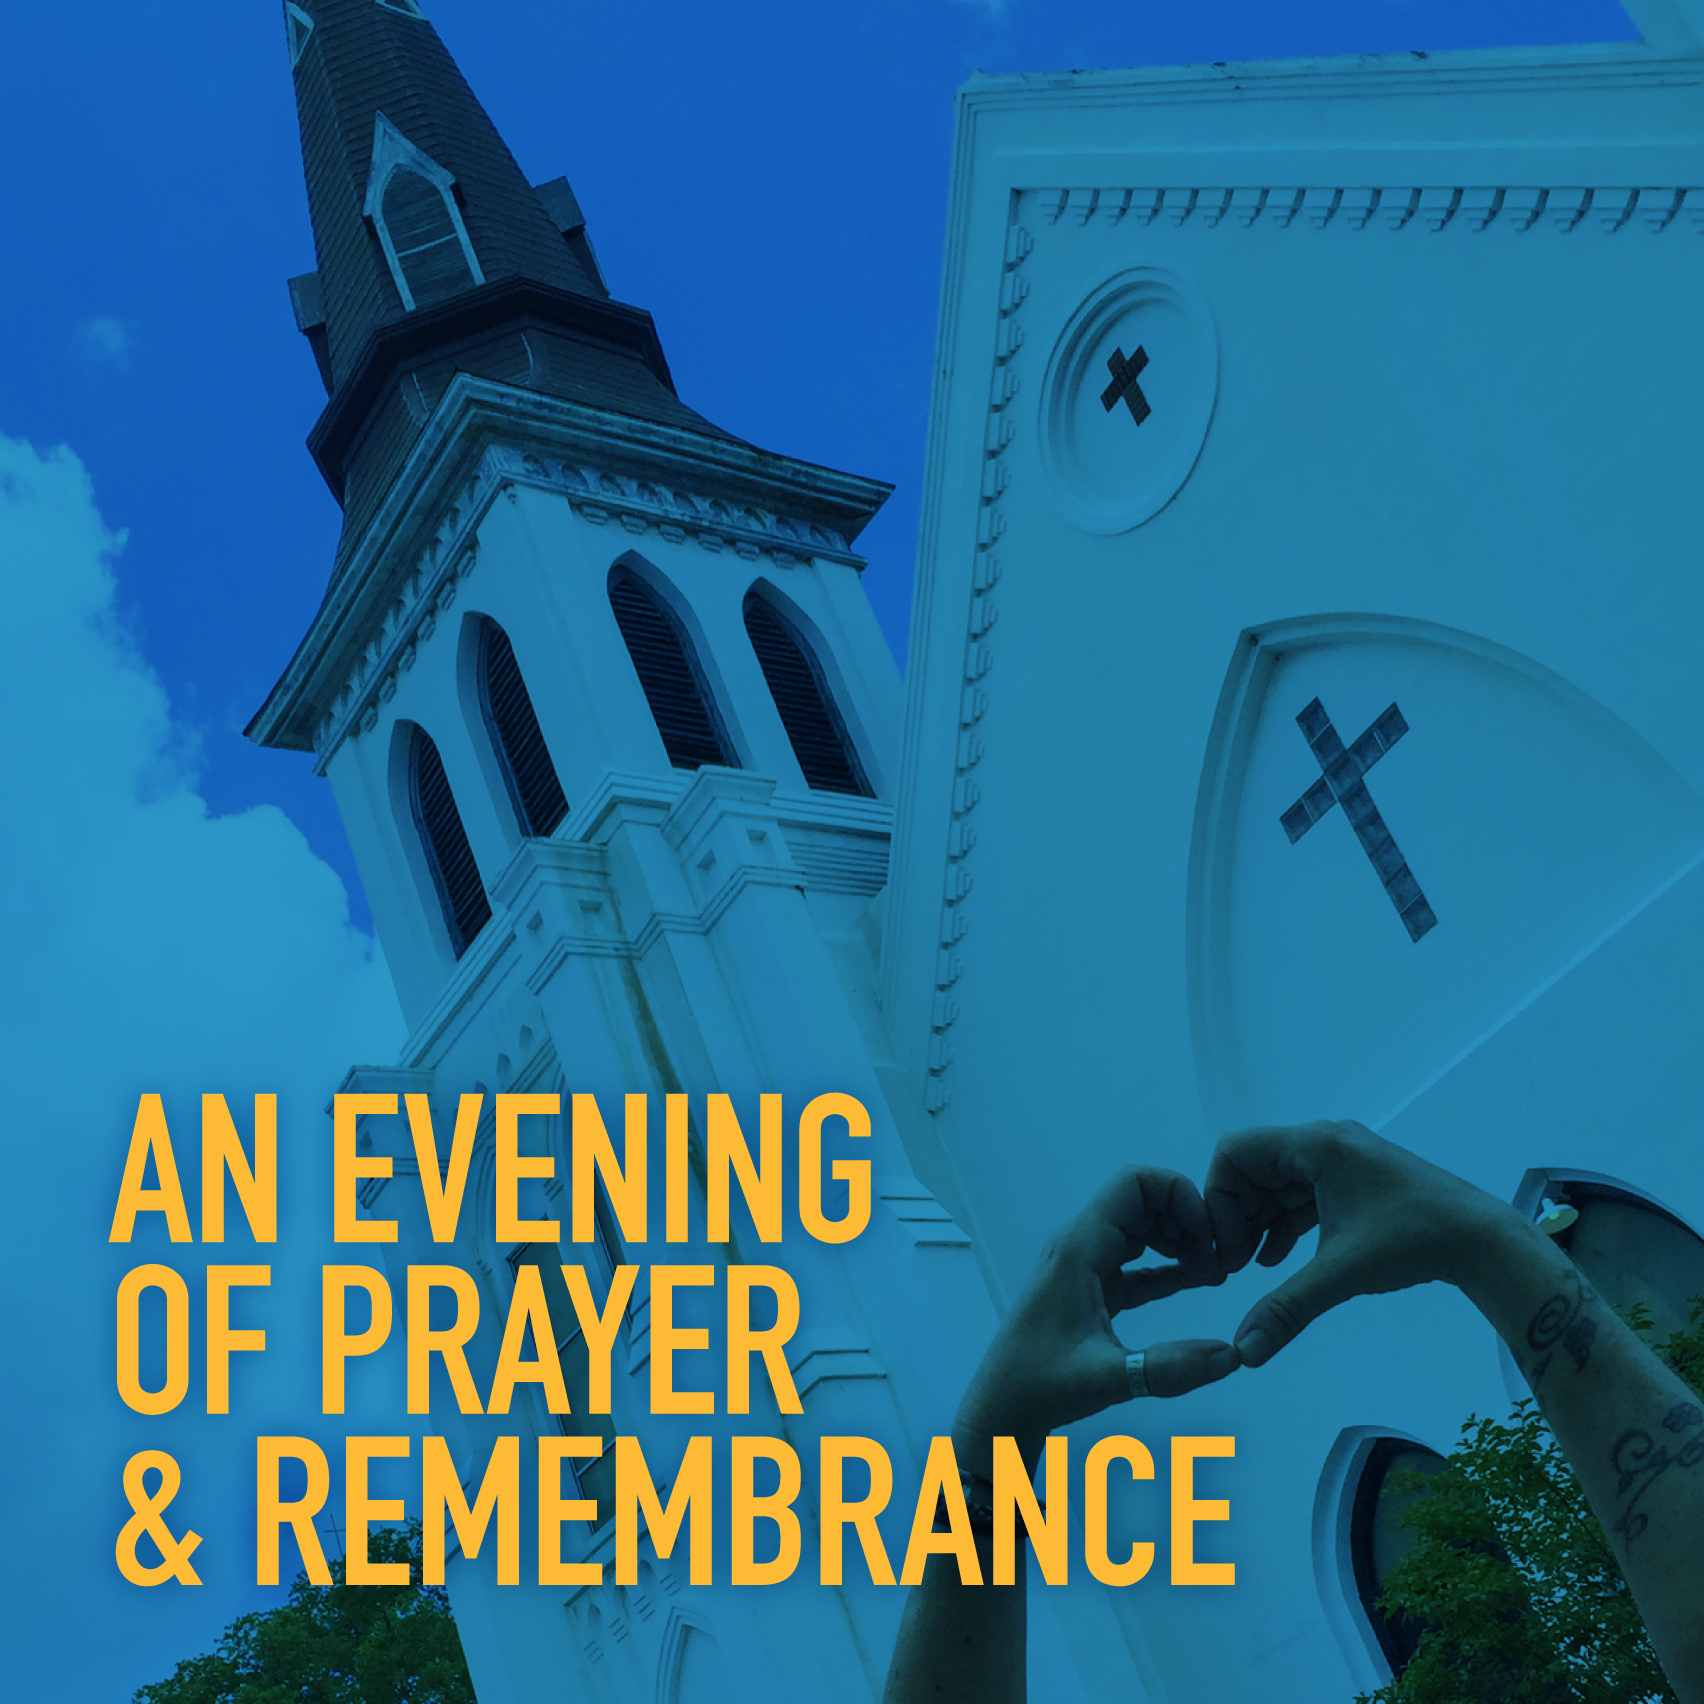 An Evening of Prayer & Remembrance